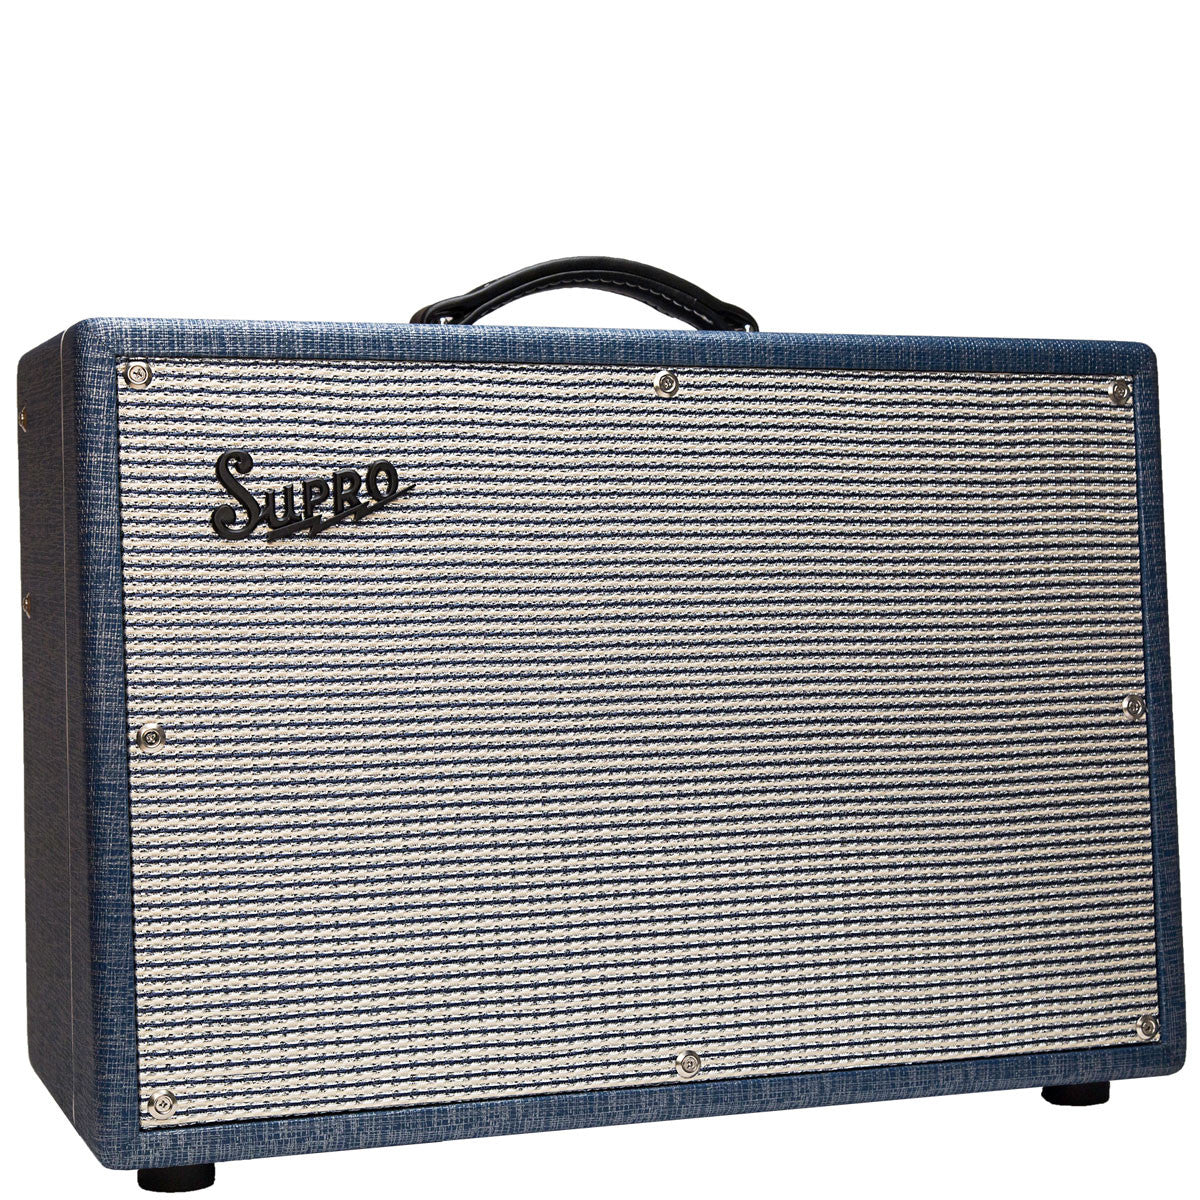 Supro - 1650RT - Royal Reverb 2x10 Combo - Vintage Guitar Boutique